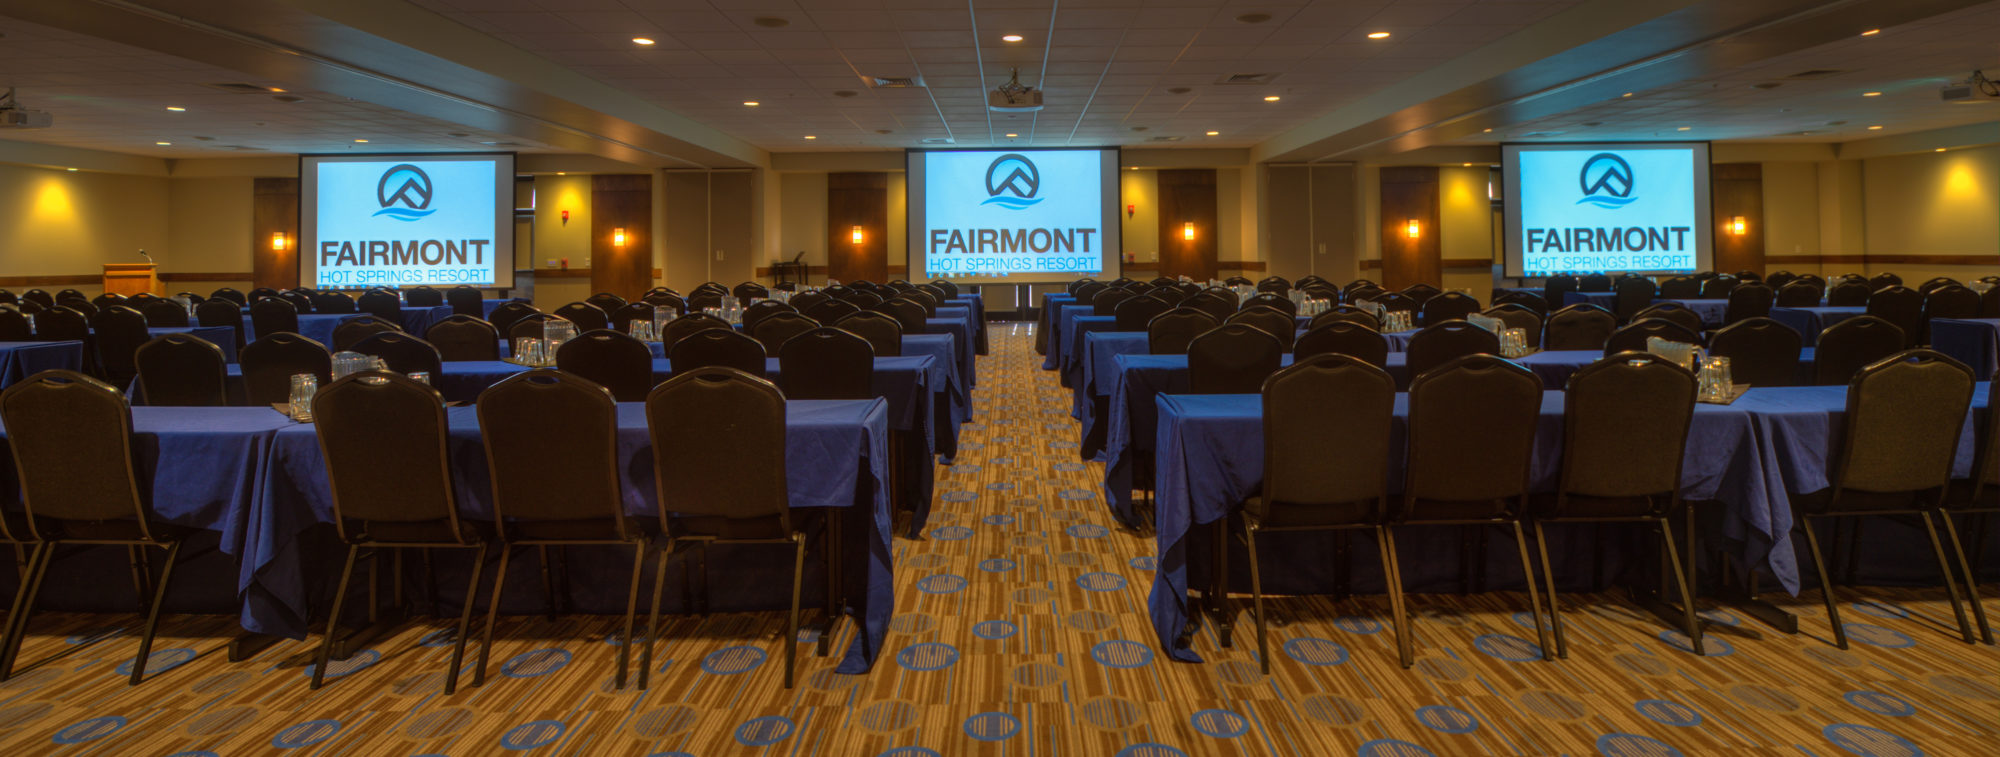 Meetings, Conferences and Events at the Fairmont Hot Springs Resort